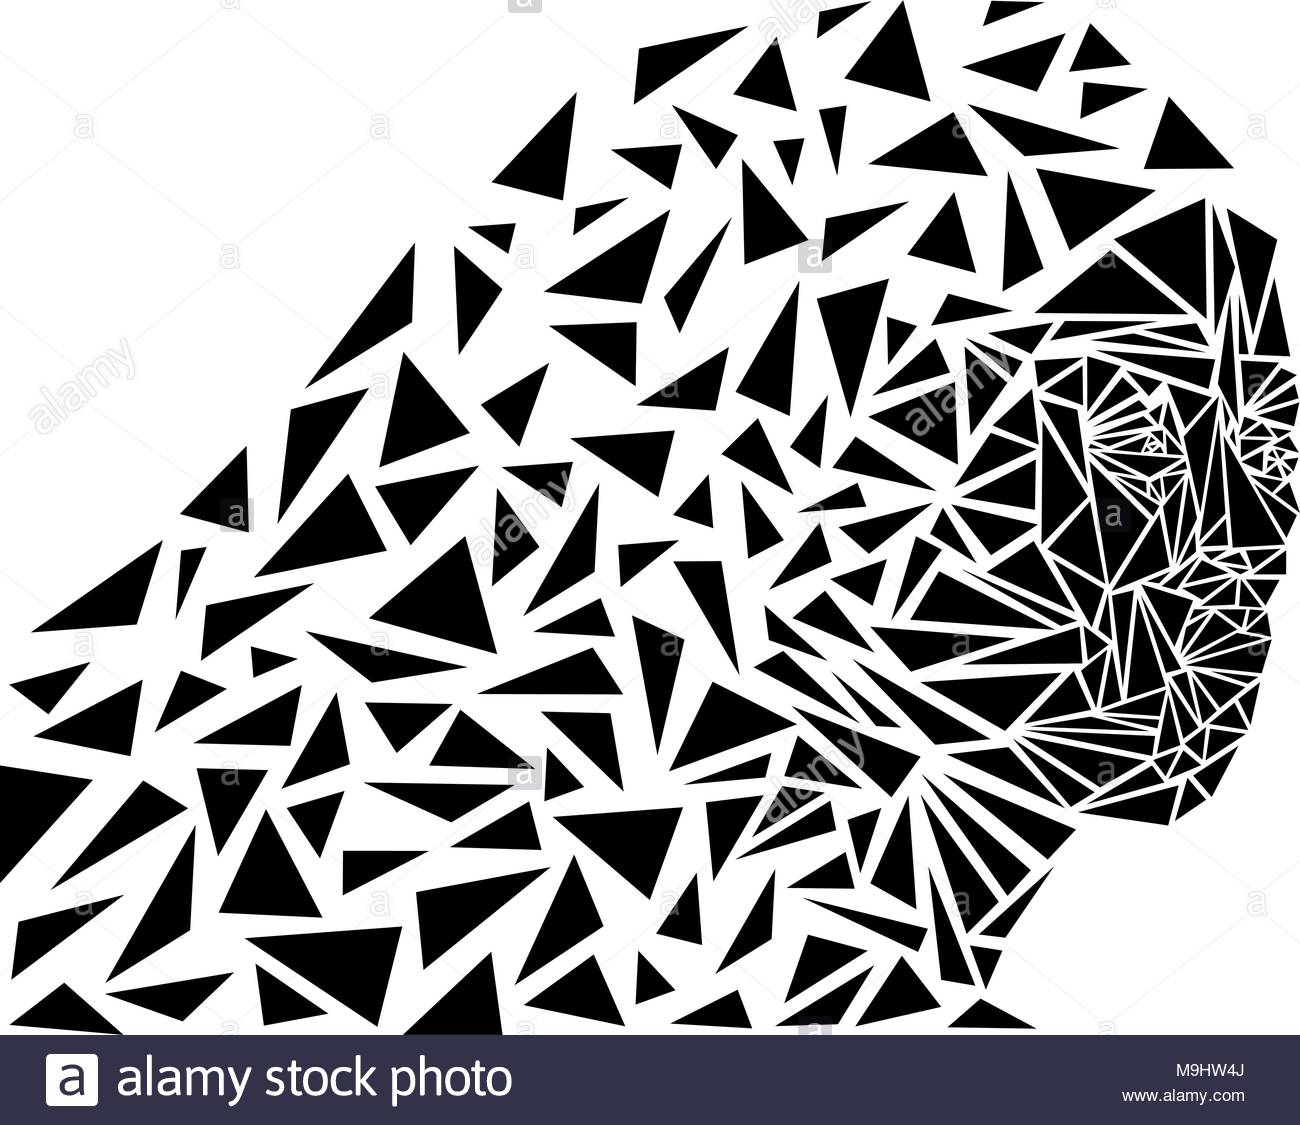 Geometric art, abstract vector illustration of a woman's face - Stock Image